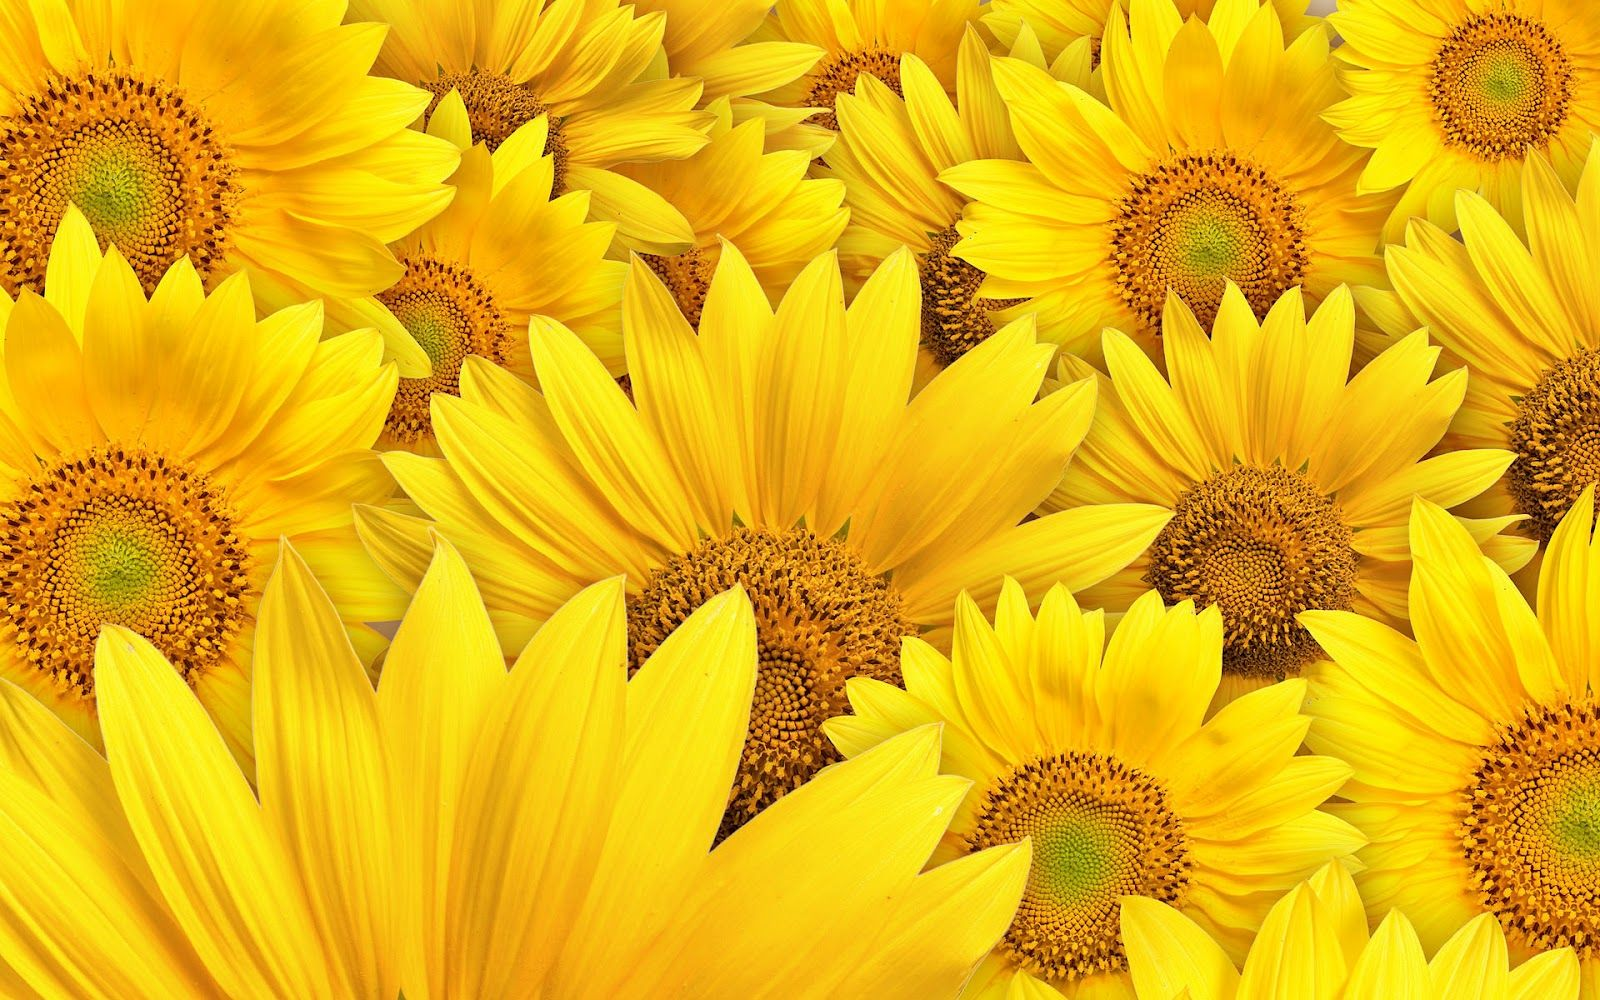 Sunflower Computer Wallpaper Bing images